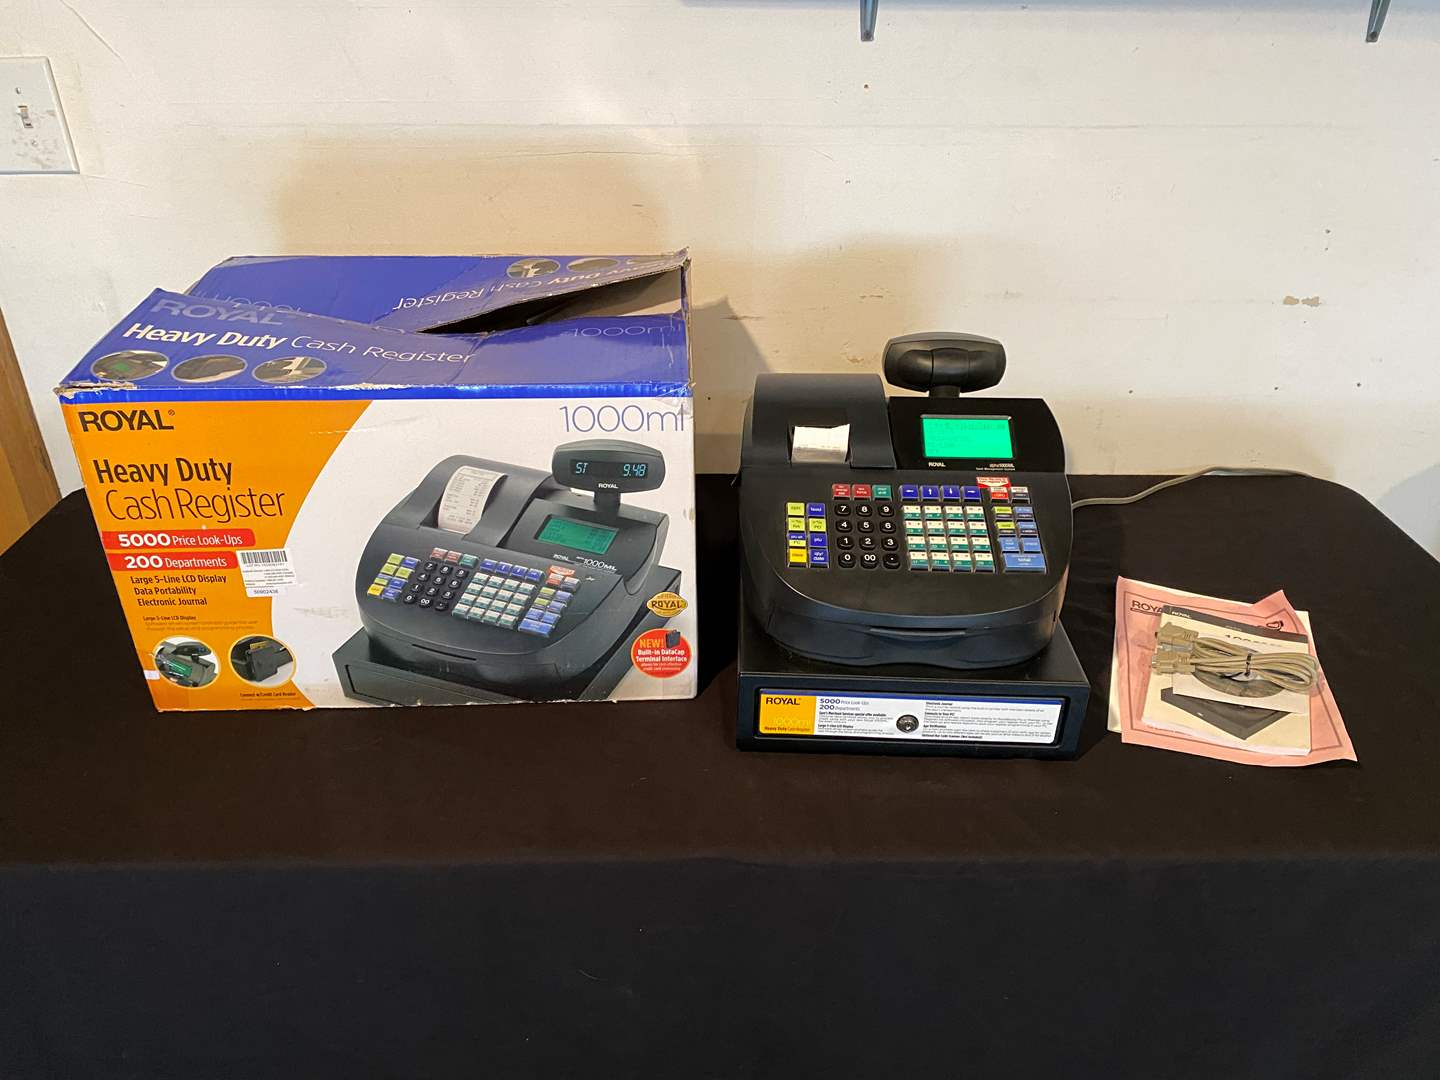 Lot # 140 - Lightly Used Royal Heavy Duty 1000ML Cash Register - (Works Great) (main image)